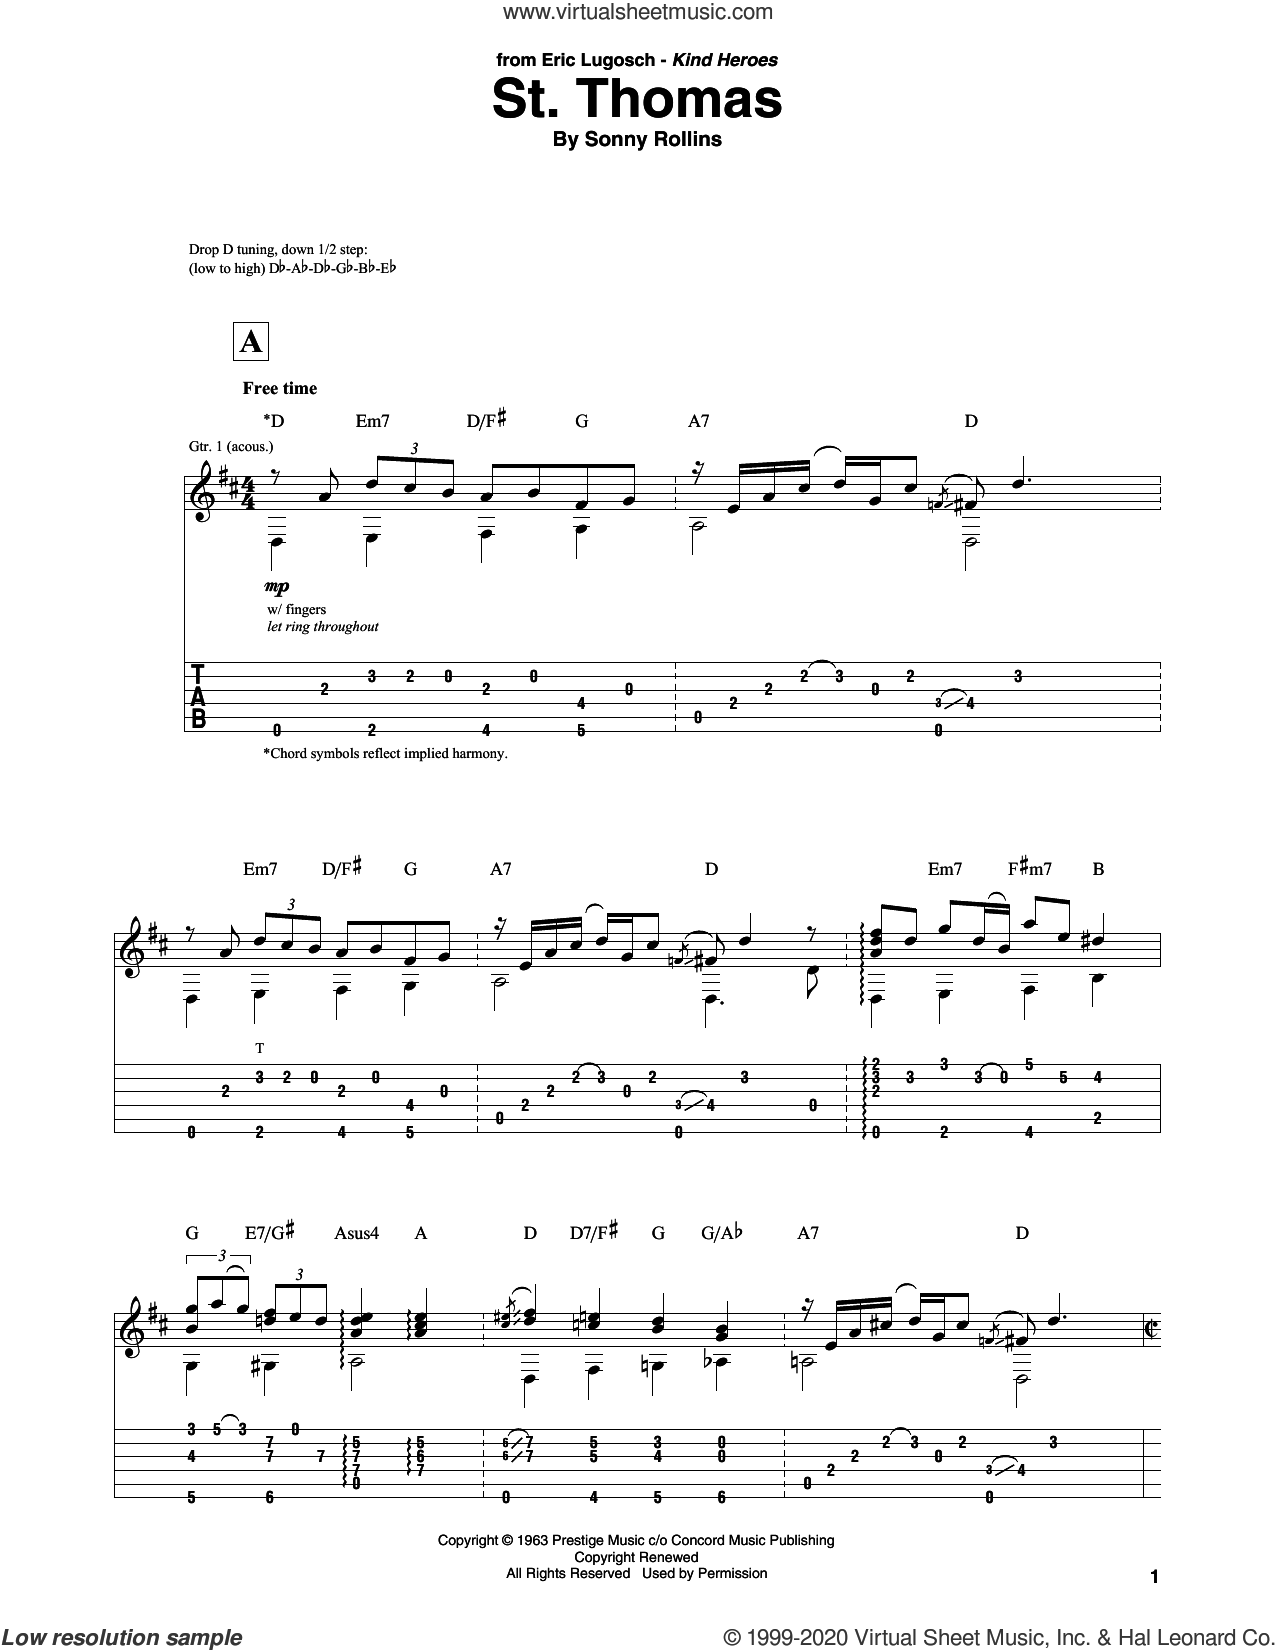 St. Thomas sheet music for guitar solo by Sonny Rollins, intermediate skill level